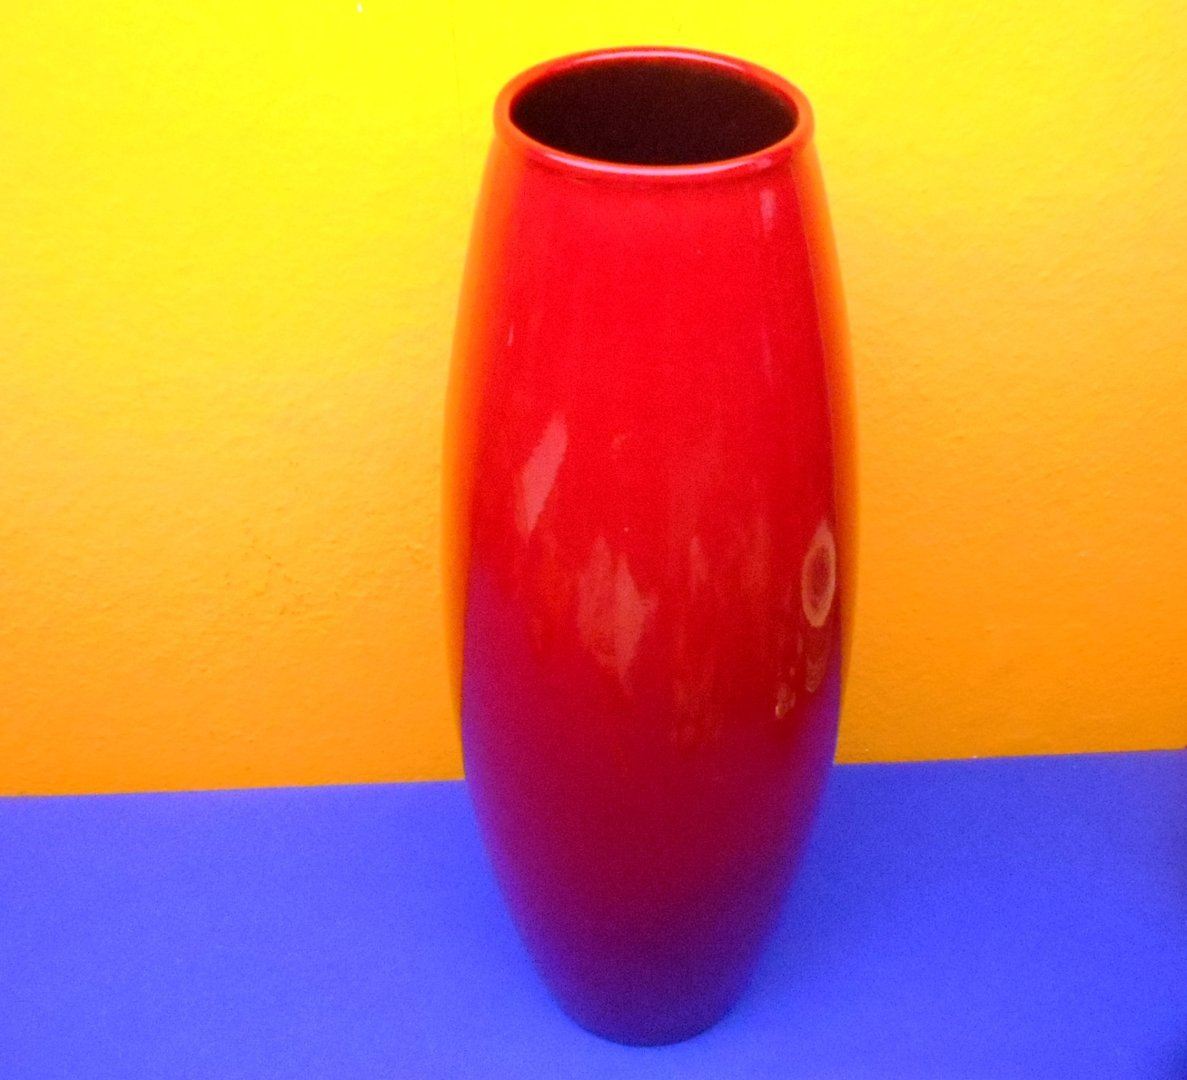 Scheurich Amano German Pottery Vase 629 50 Blood Red Kusera